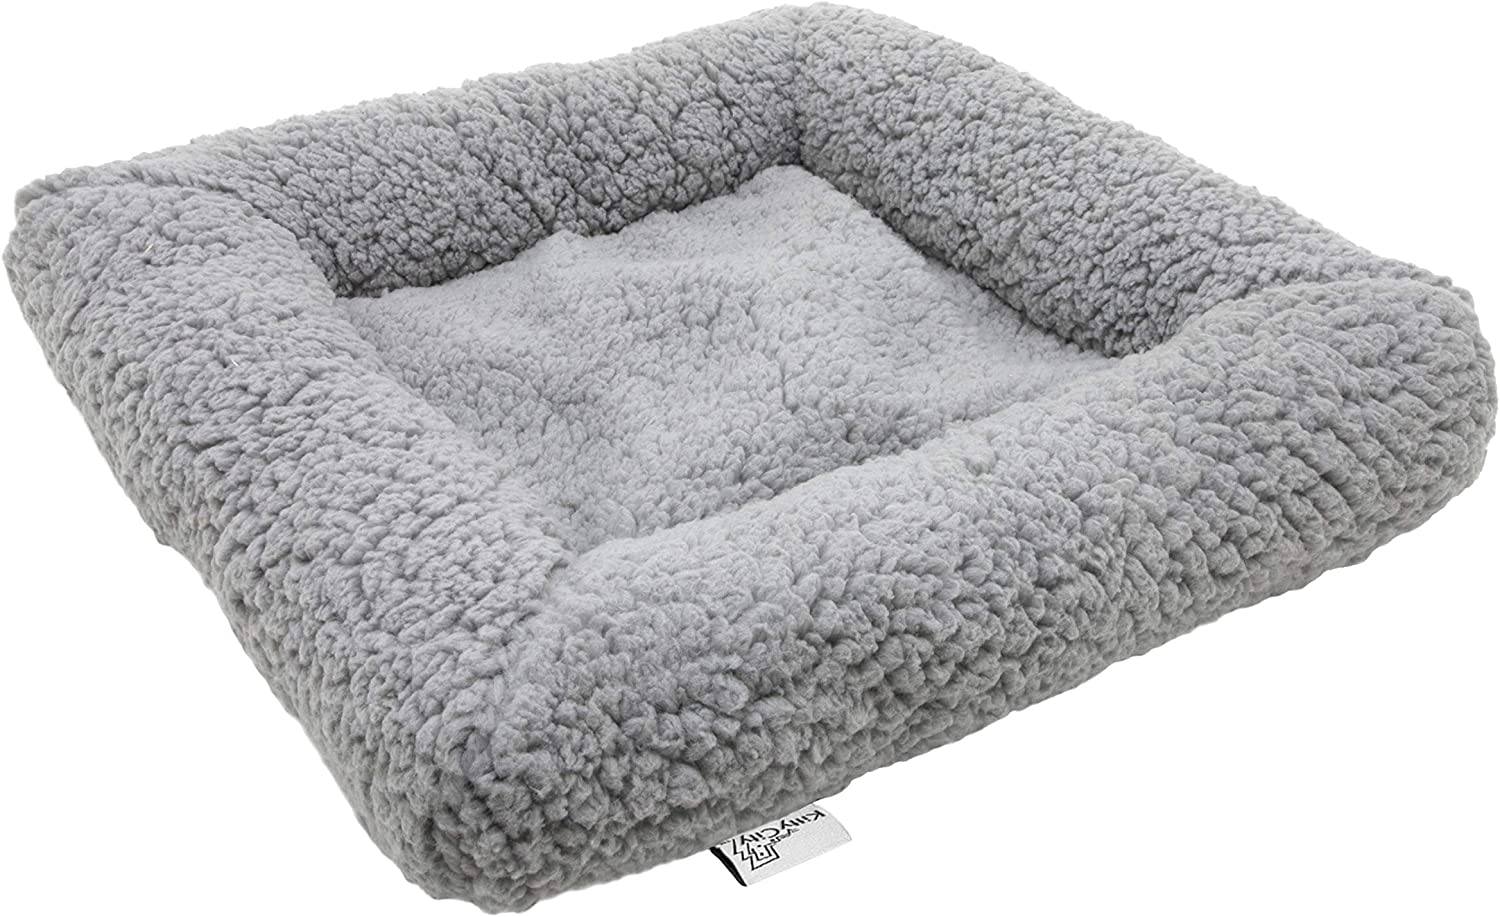 Kitty City Large Cat Cube Replacement Comfy Bed